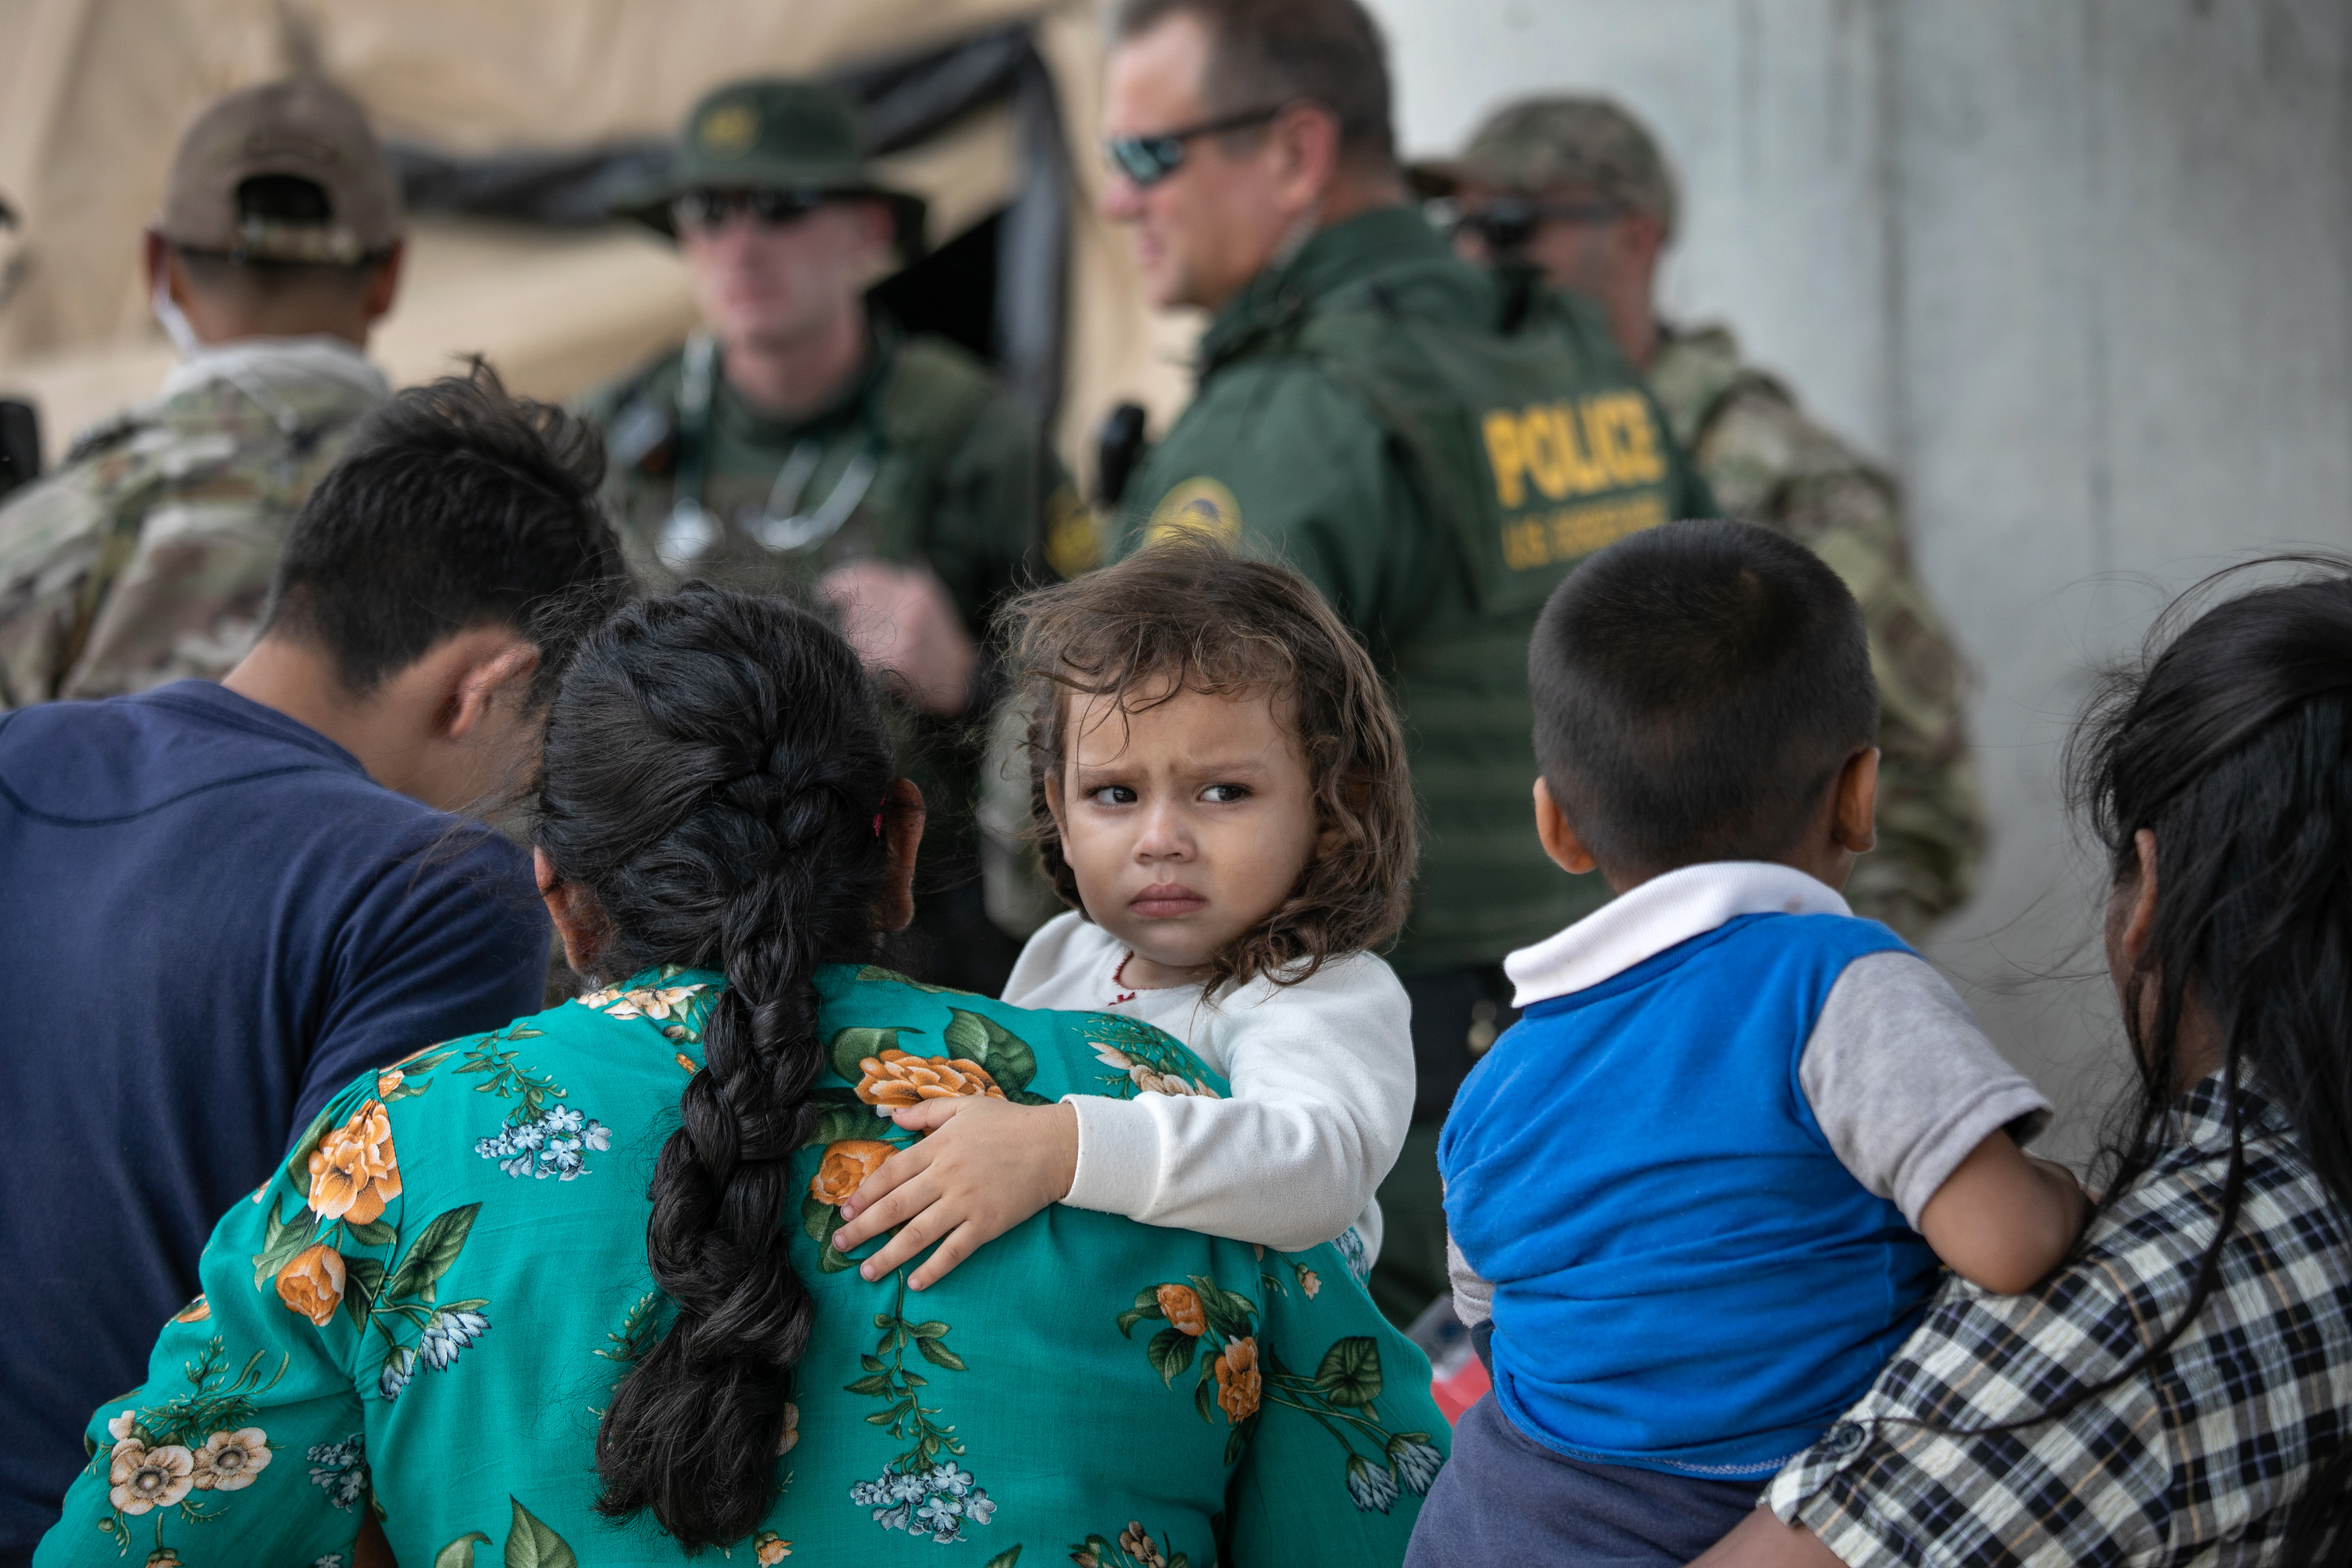 Immigrants wait to be interviewed by U.S. Border Patrol agents after they were taken into custody on July 02, 2019 in McAllen, Texas. (John Moore/Getty Images)